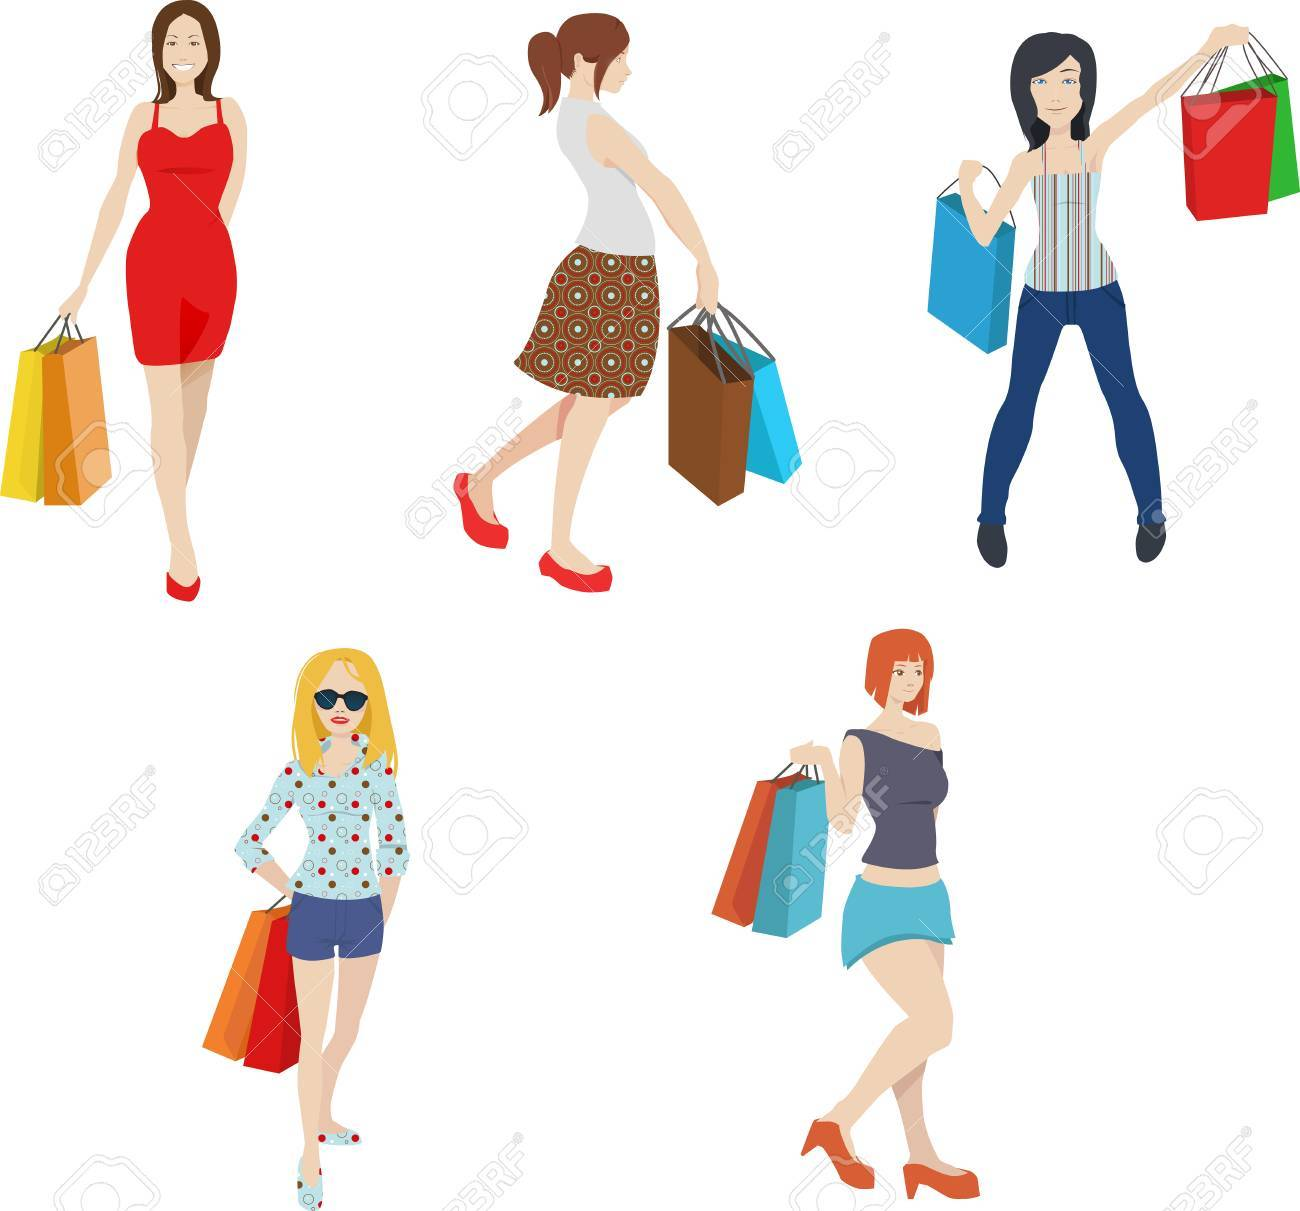 shopping women clip art fashionable trendy girl clipart royalty rh 123rf com clip art of women praying clip art of women in prayer